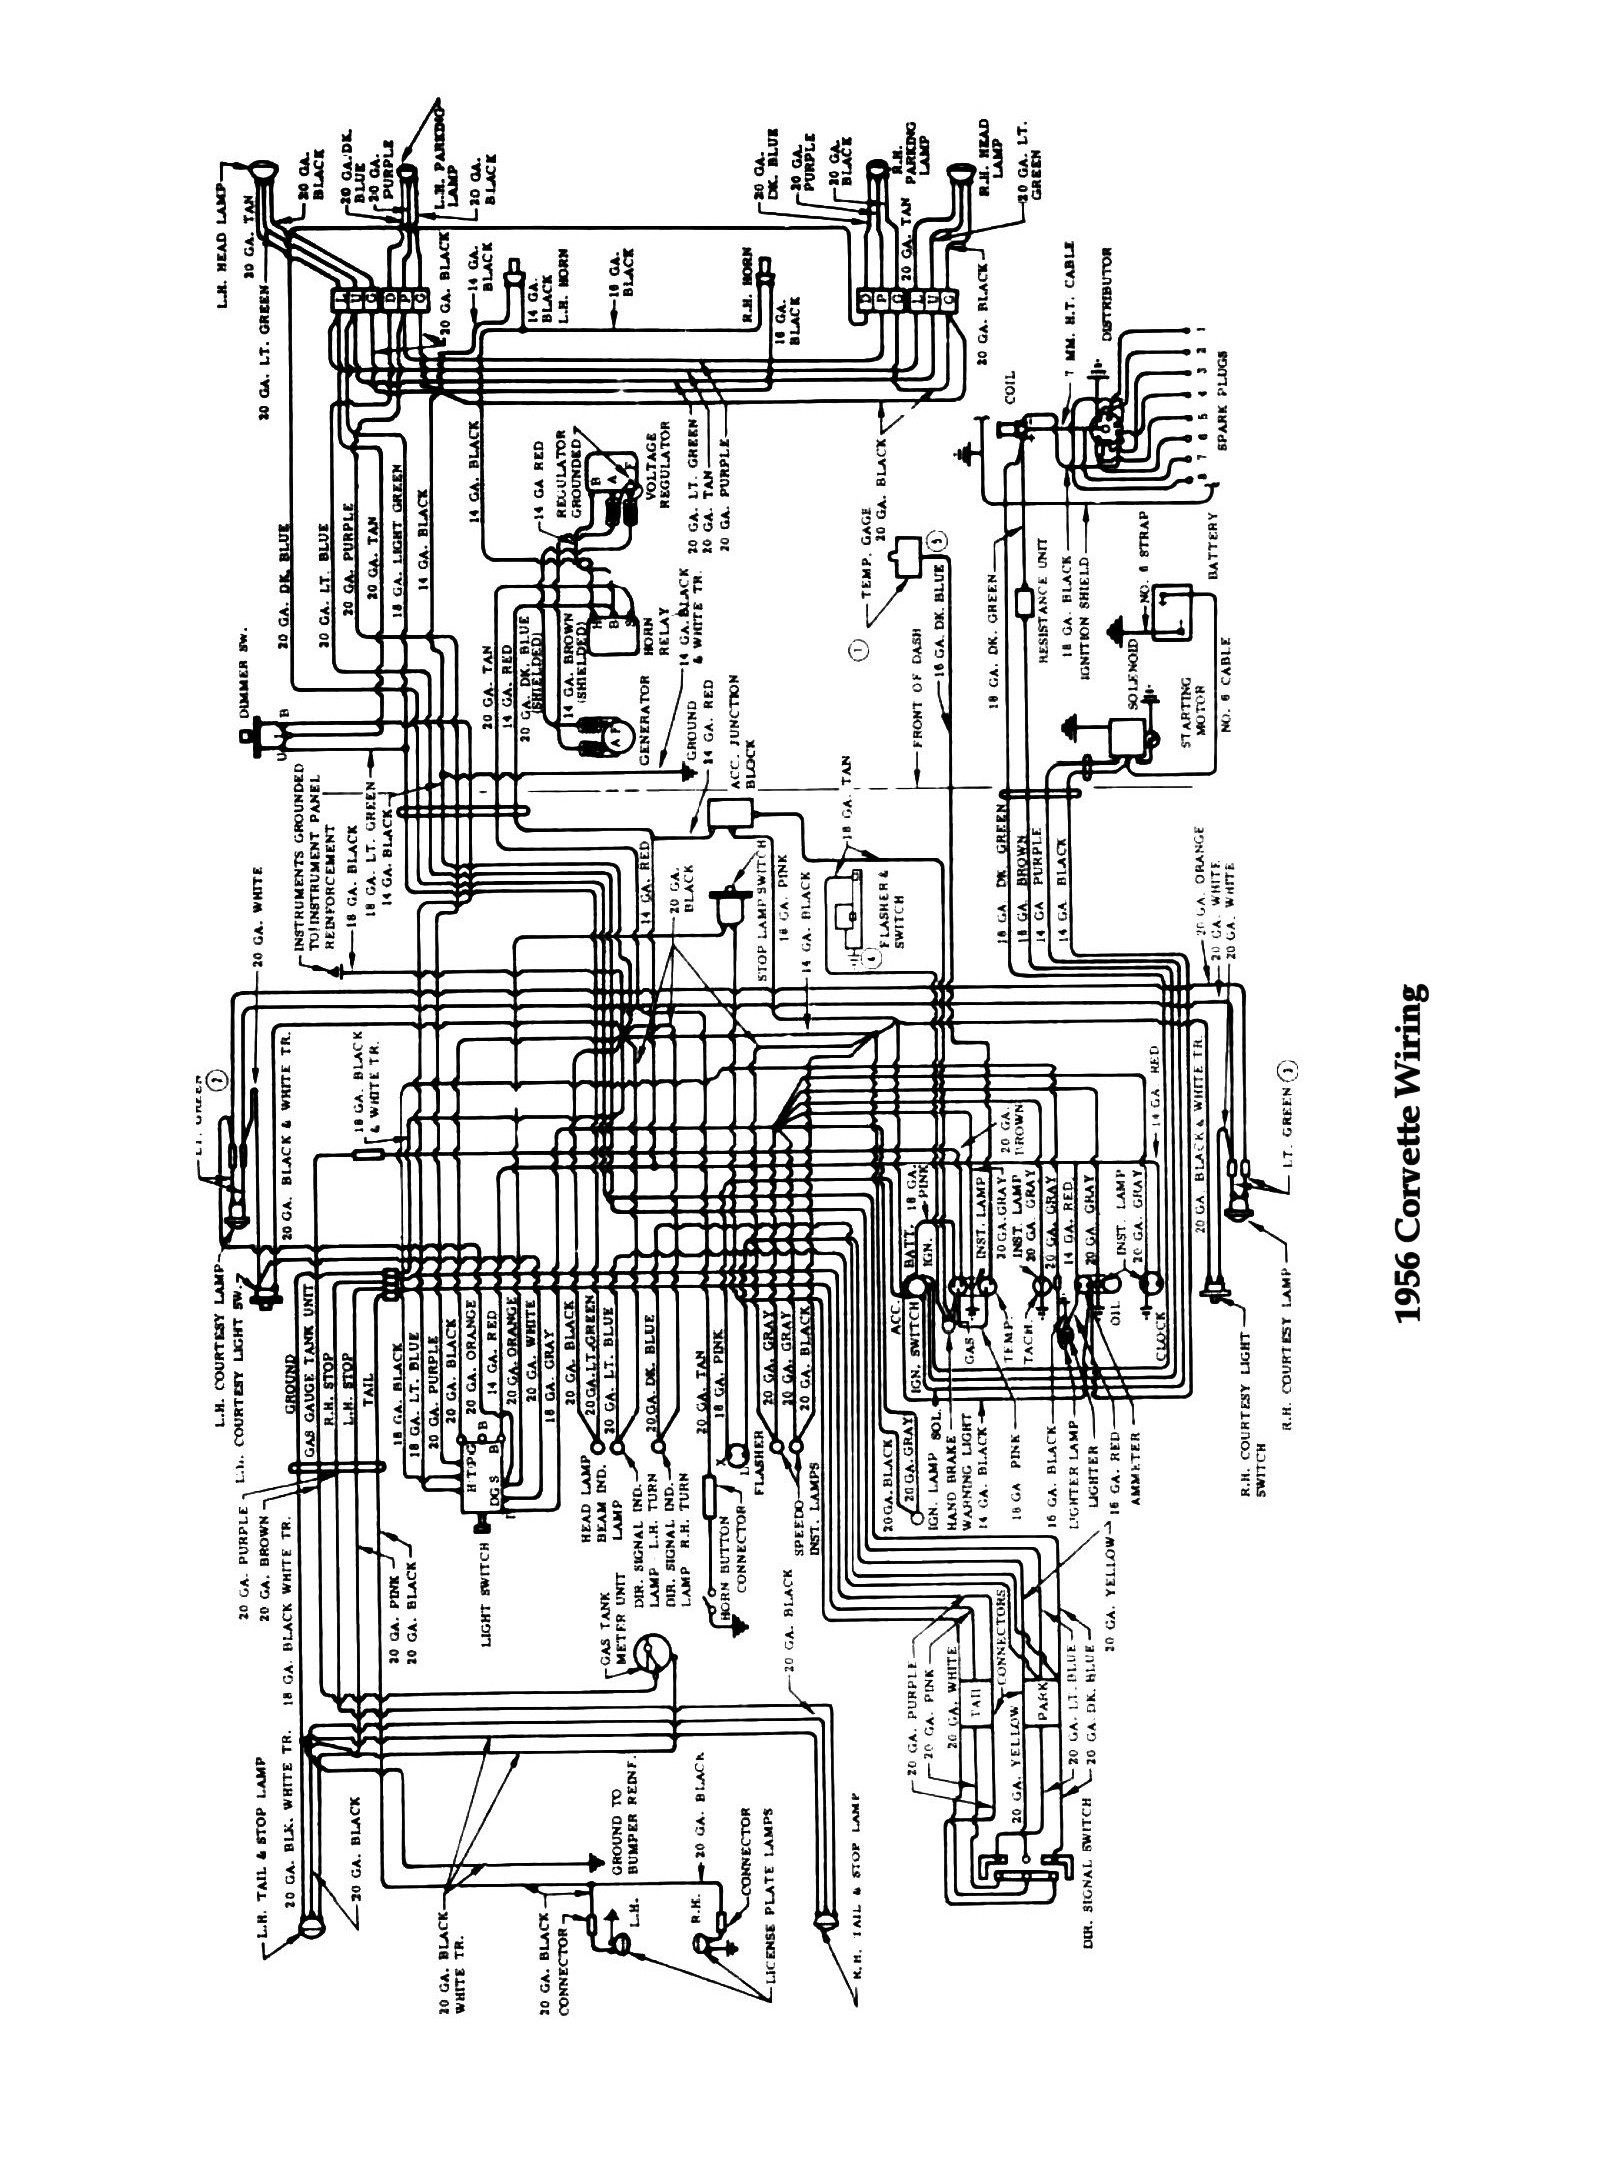 56corvette chevy wiring diagrams c3 corvette wiring diagram at panicattacktreatment.co